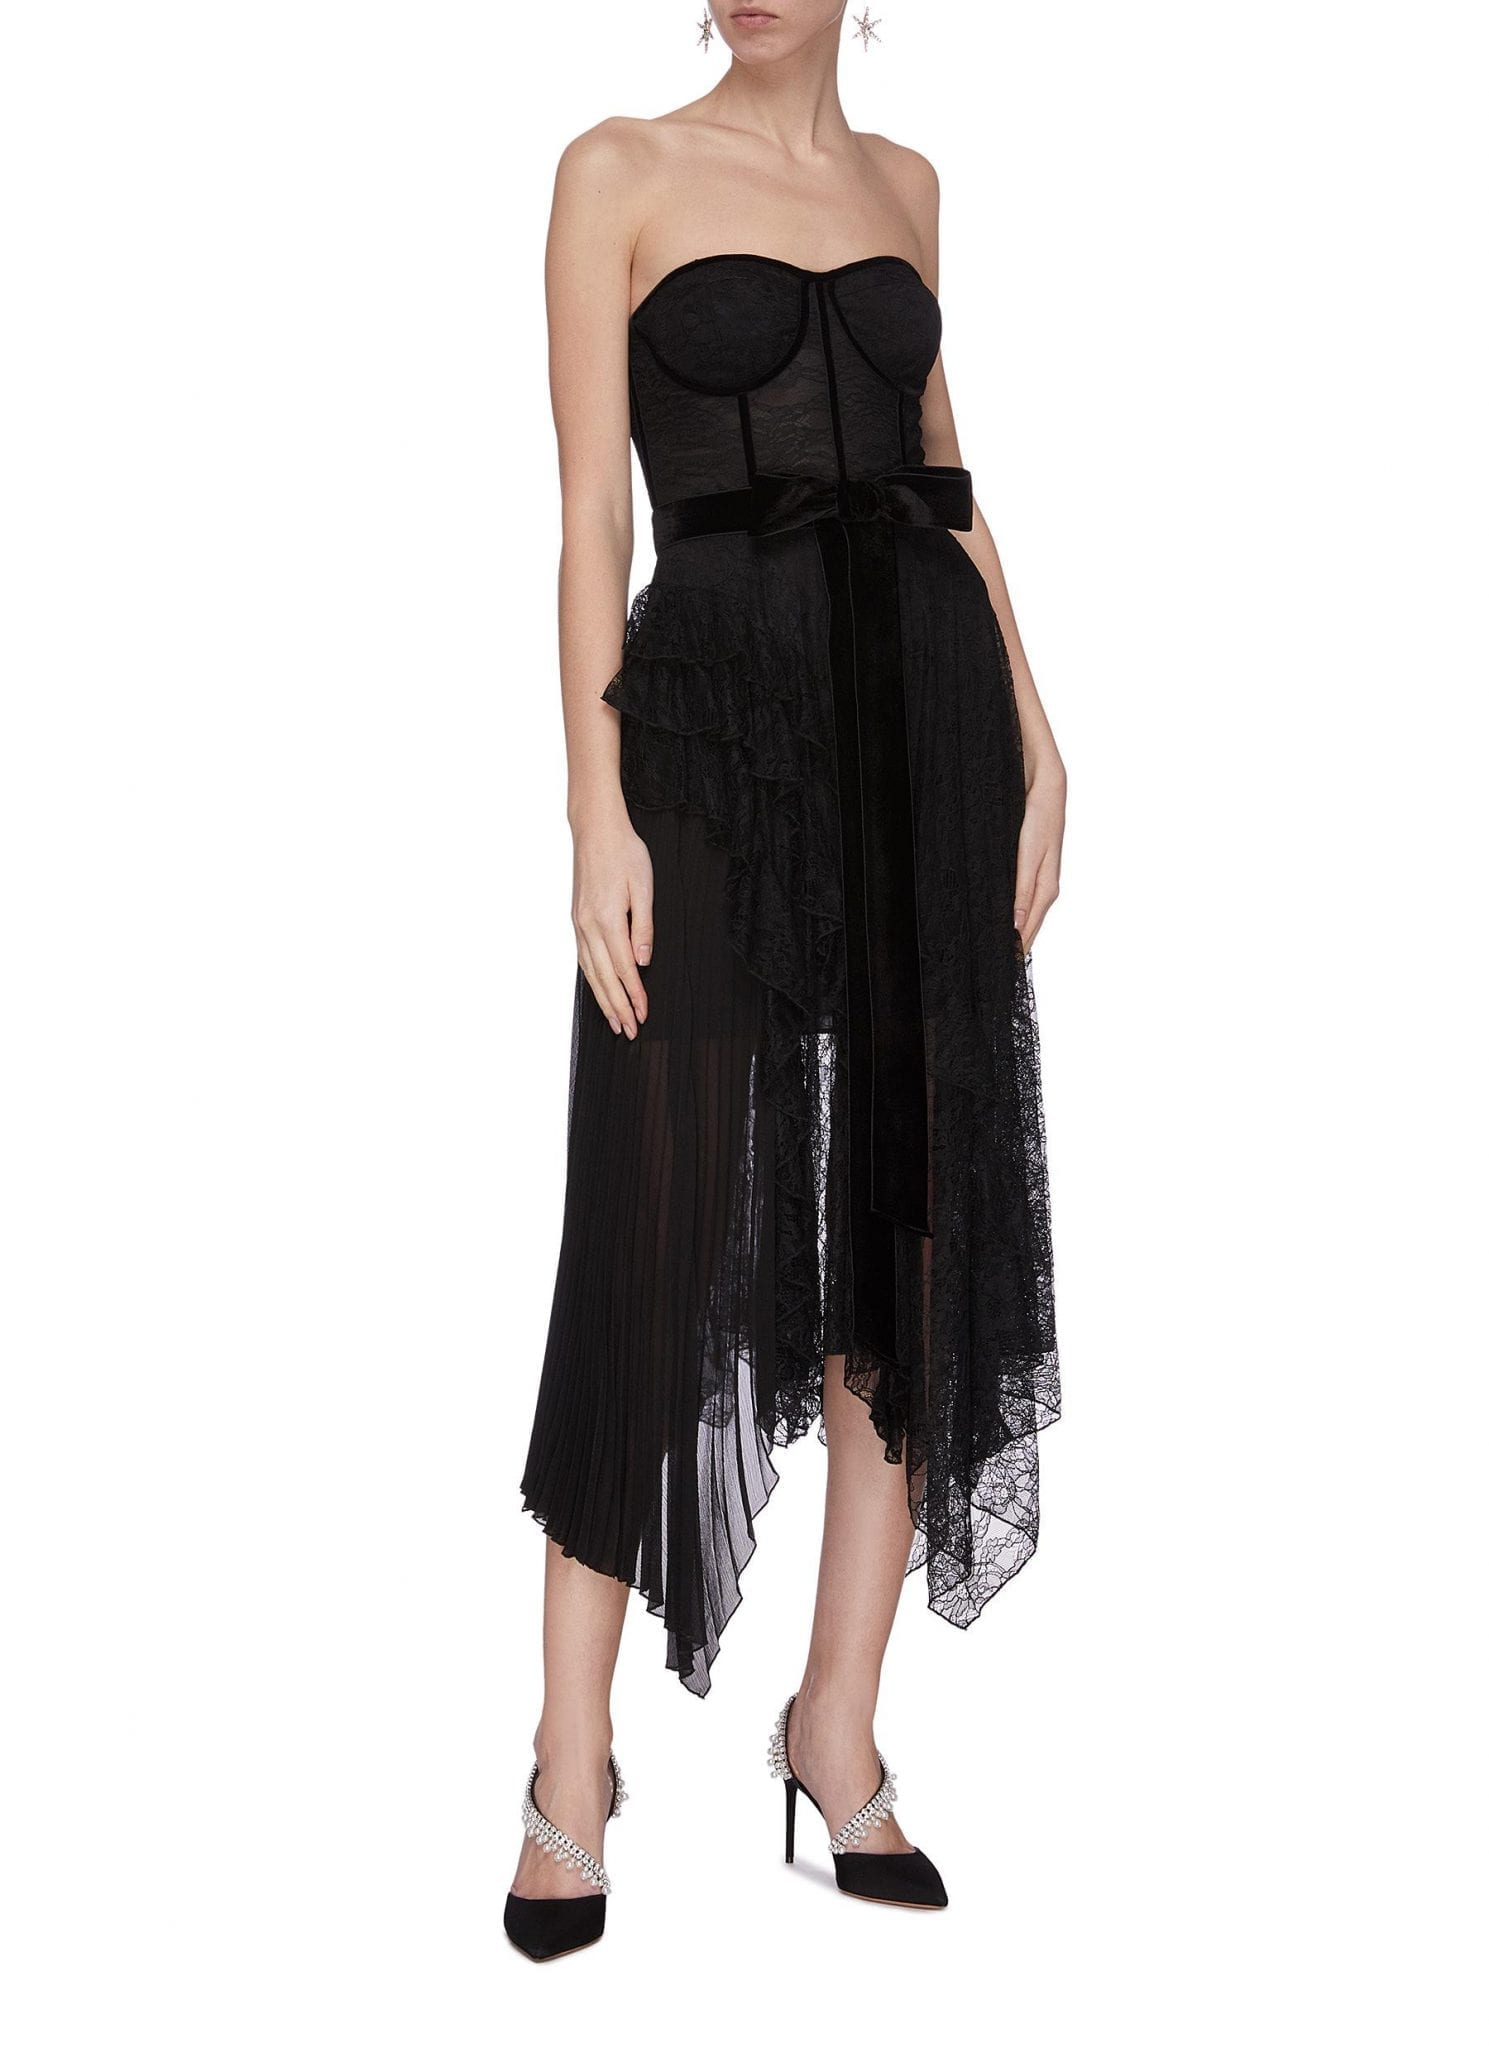 ALICE + OLIVIA 'Bree' Belted Asymmetric Ruffle Dress